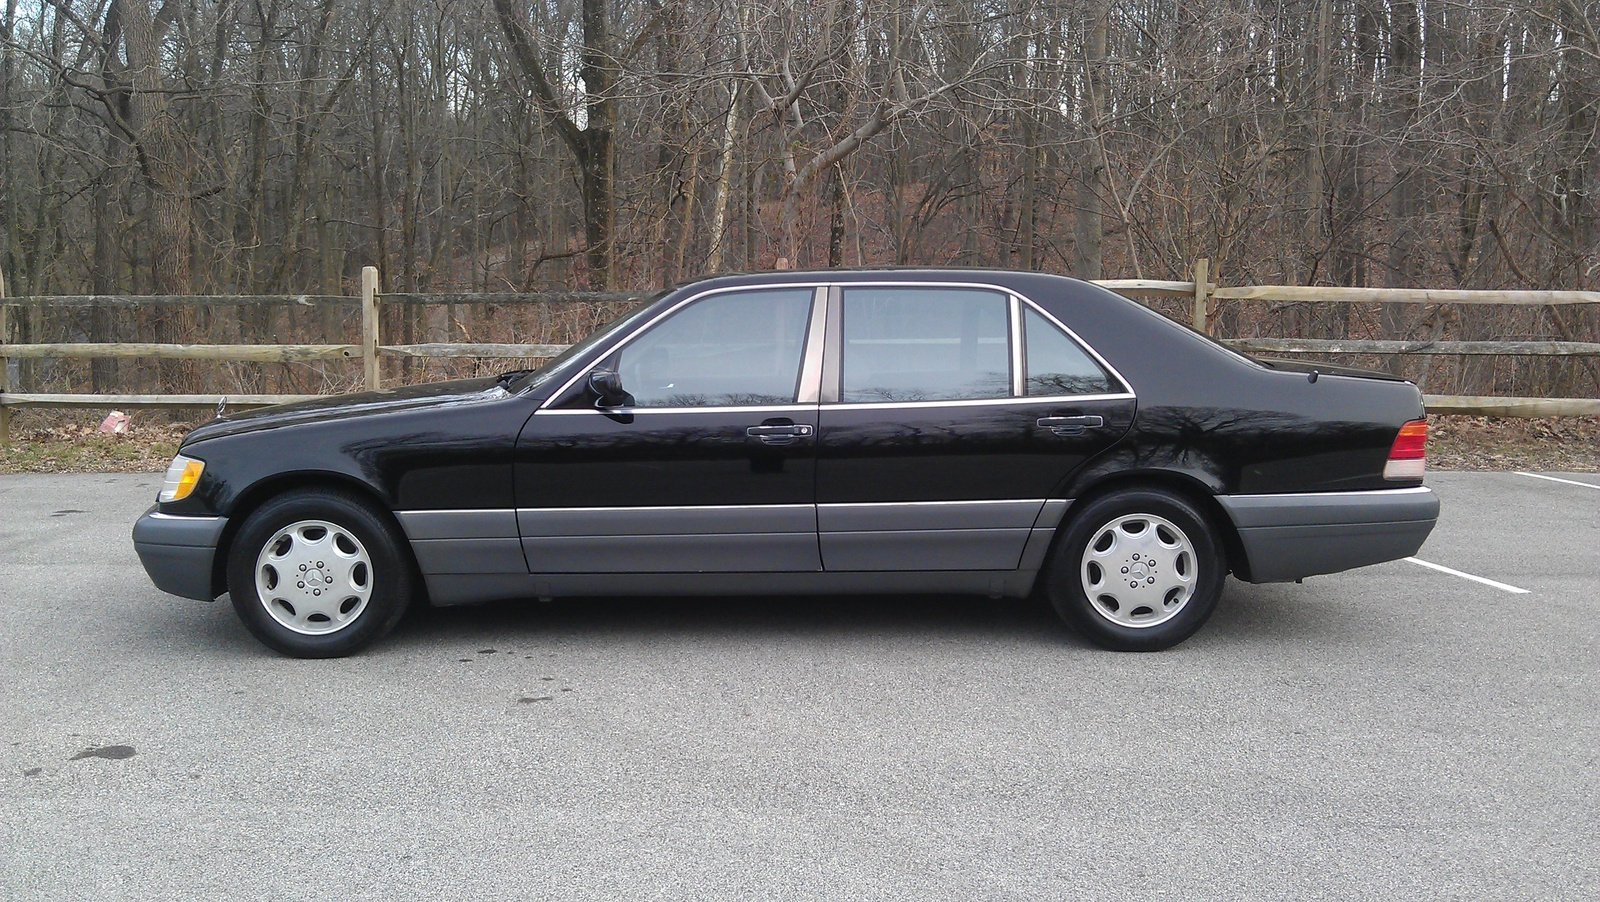 Picture of 1995 mercedes benz s class 4 dr s420 sedan for 1995 mercedes benz s420